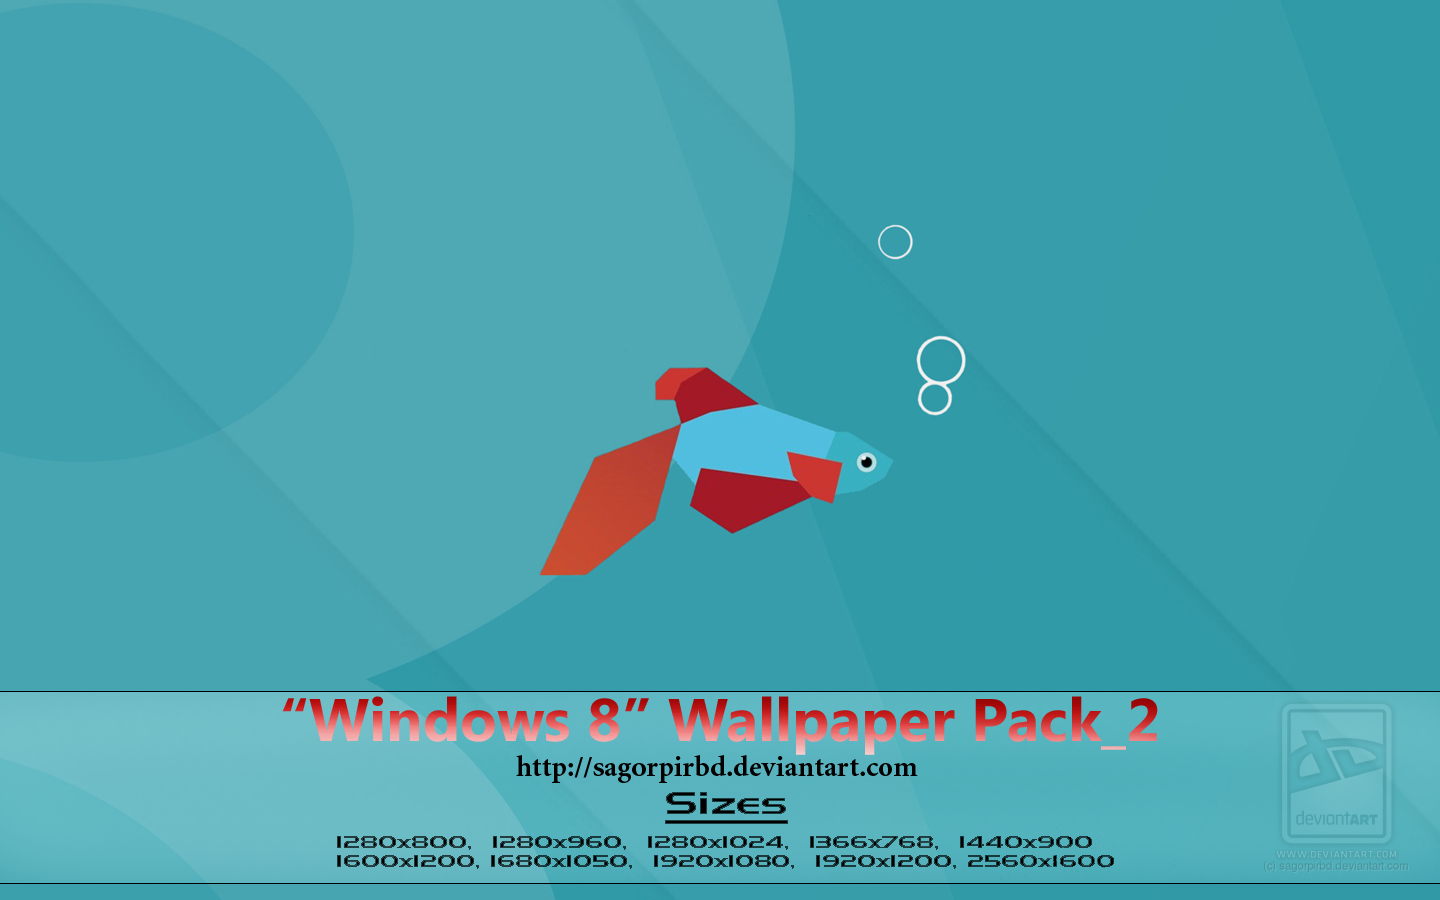 Design poster win8 - Windows 8 Wallpaper Pack_2 By Sagorpirbd Windows 8 Wallpaper Pack_2 By Sagorpirbd